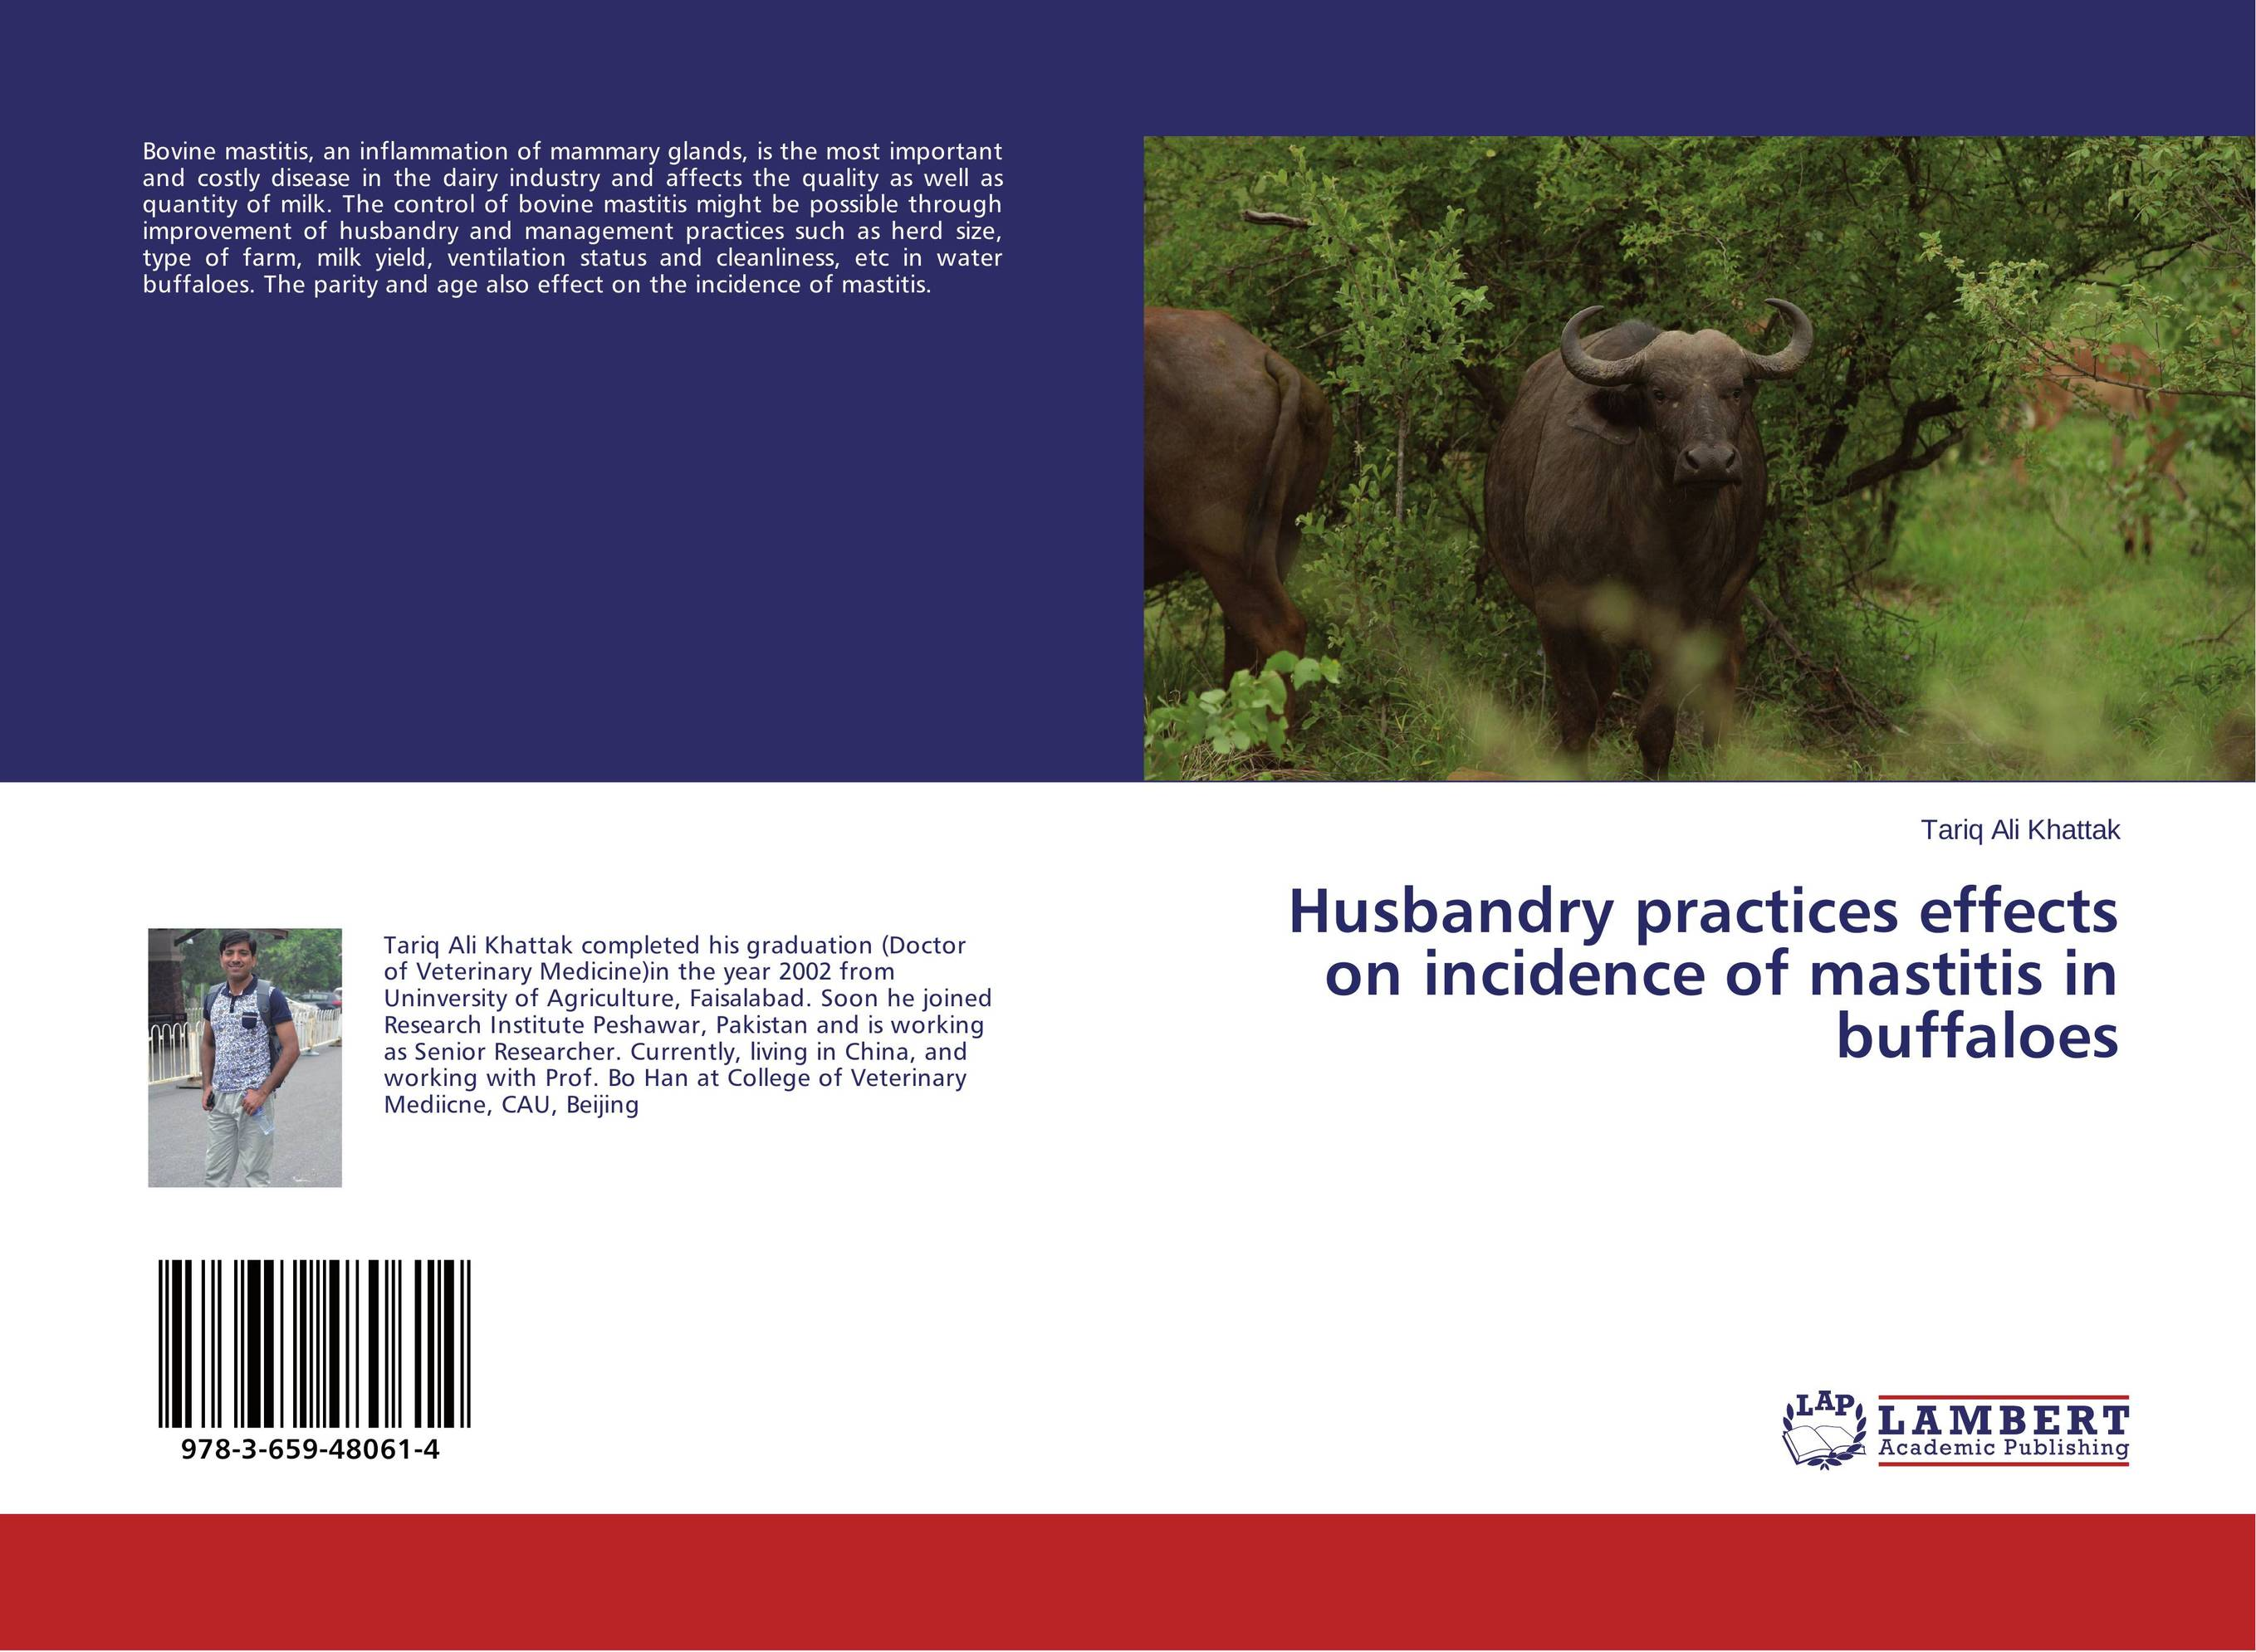 Husbandry practices effects on incidence of mastitis in buffaloes therapeutic efficiency of norgestomet and pmsg in anestrous buffaloes